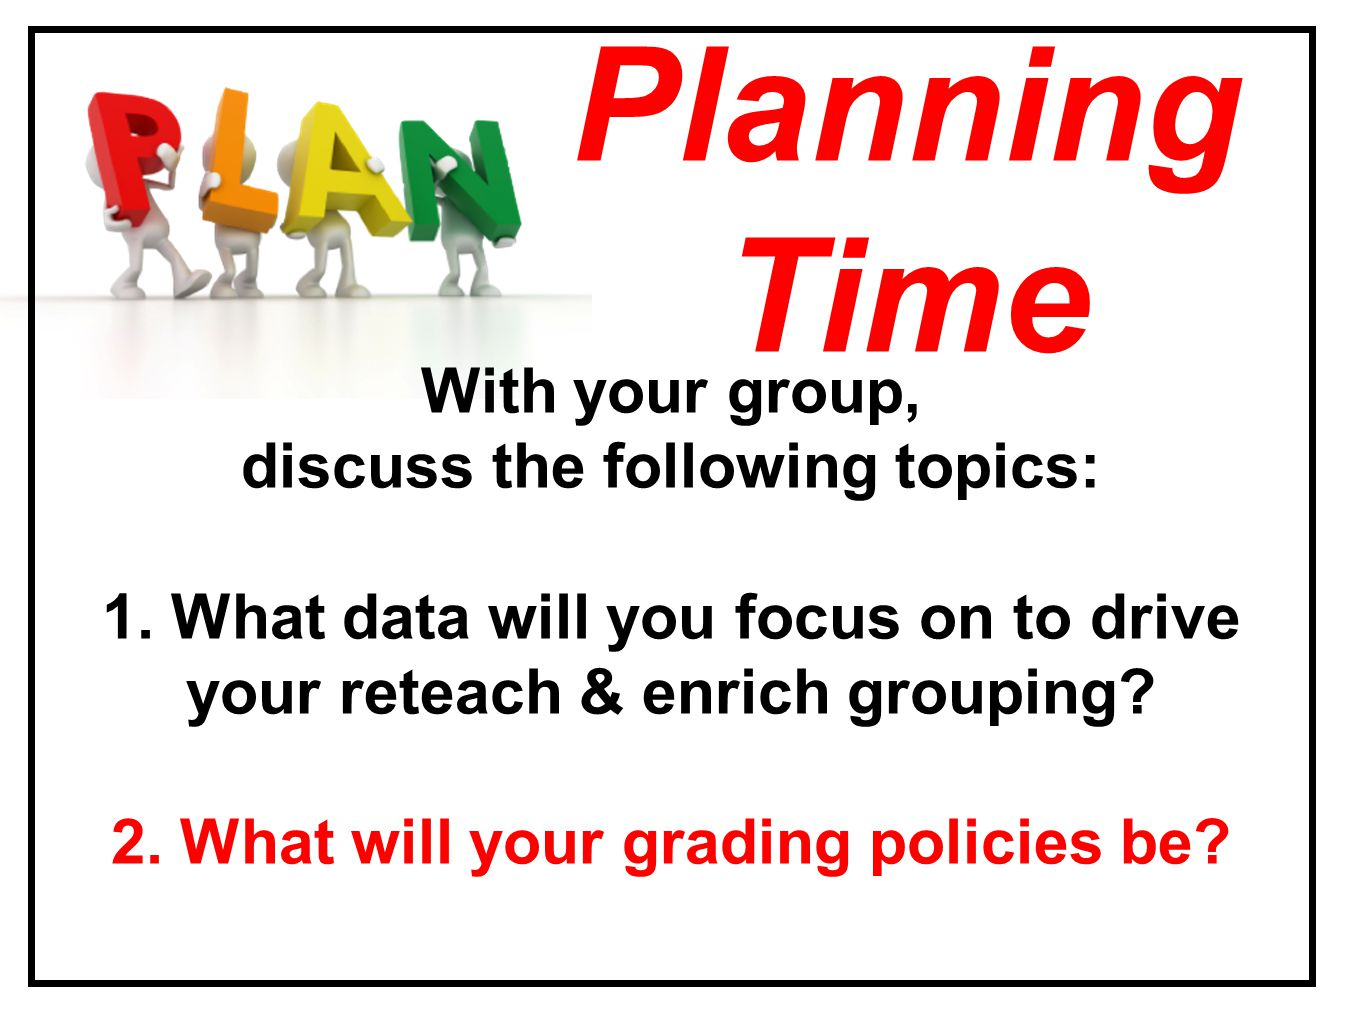 With your group, discuss the following topics: 1. What data will you focus on to drive your reteach & enrich grouping? 2. What will your grading polic